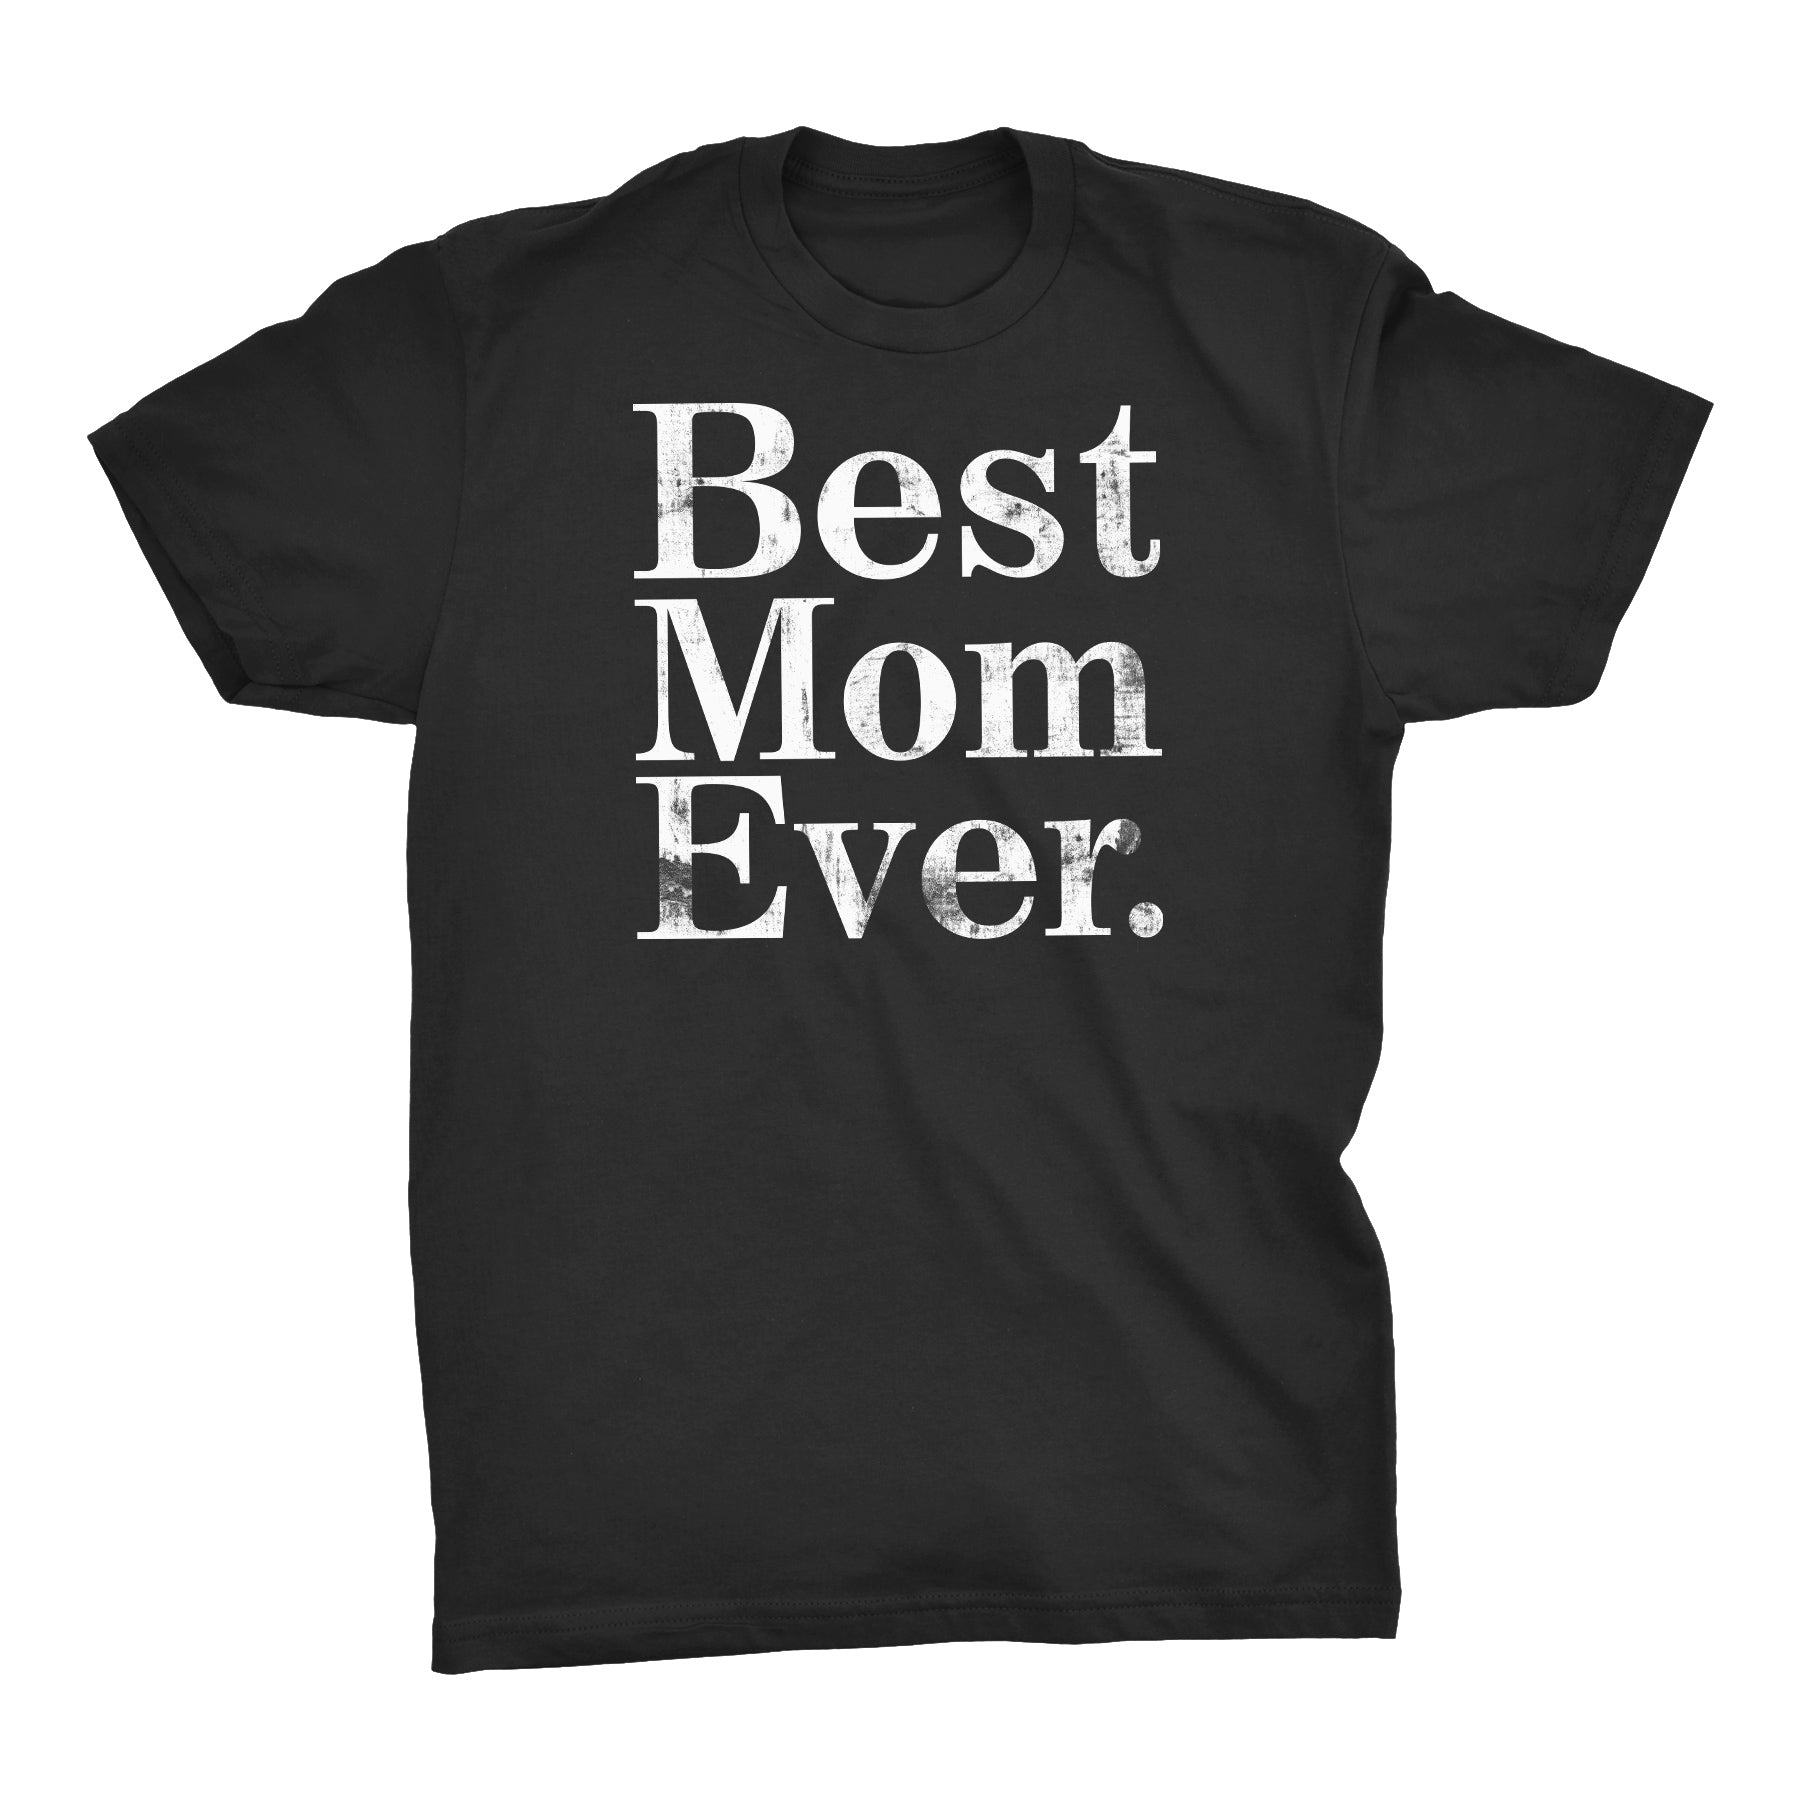 ShirtInvaders Best Mom Ever - DISTRESSED - Mother's Day Gift T-shirt - Black